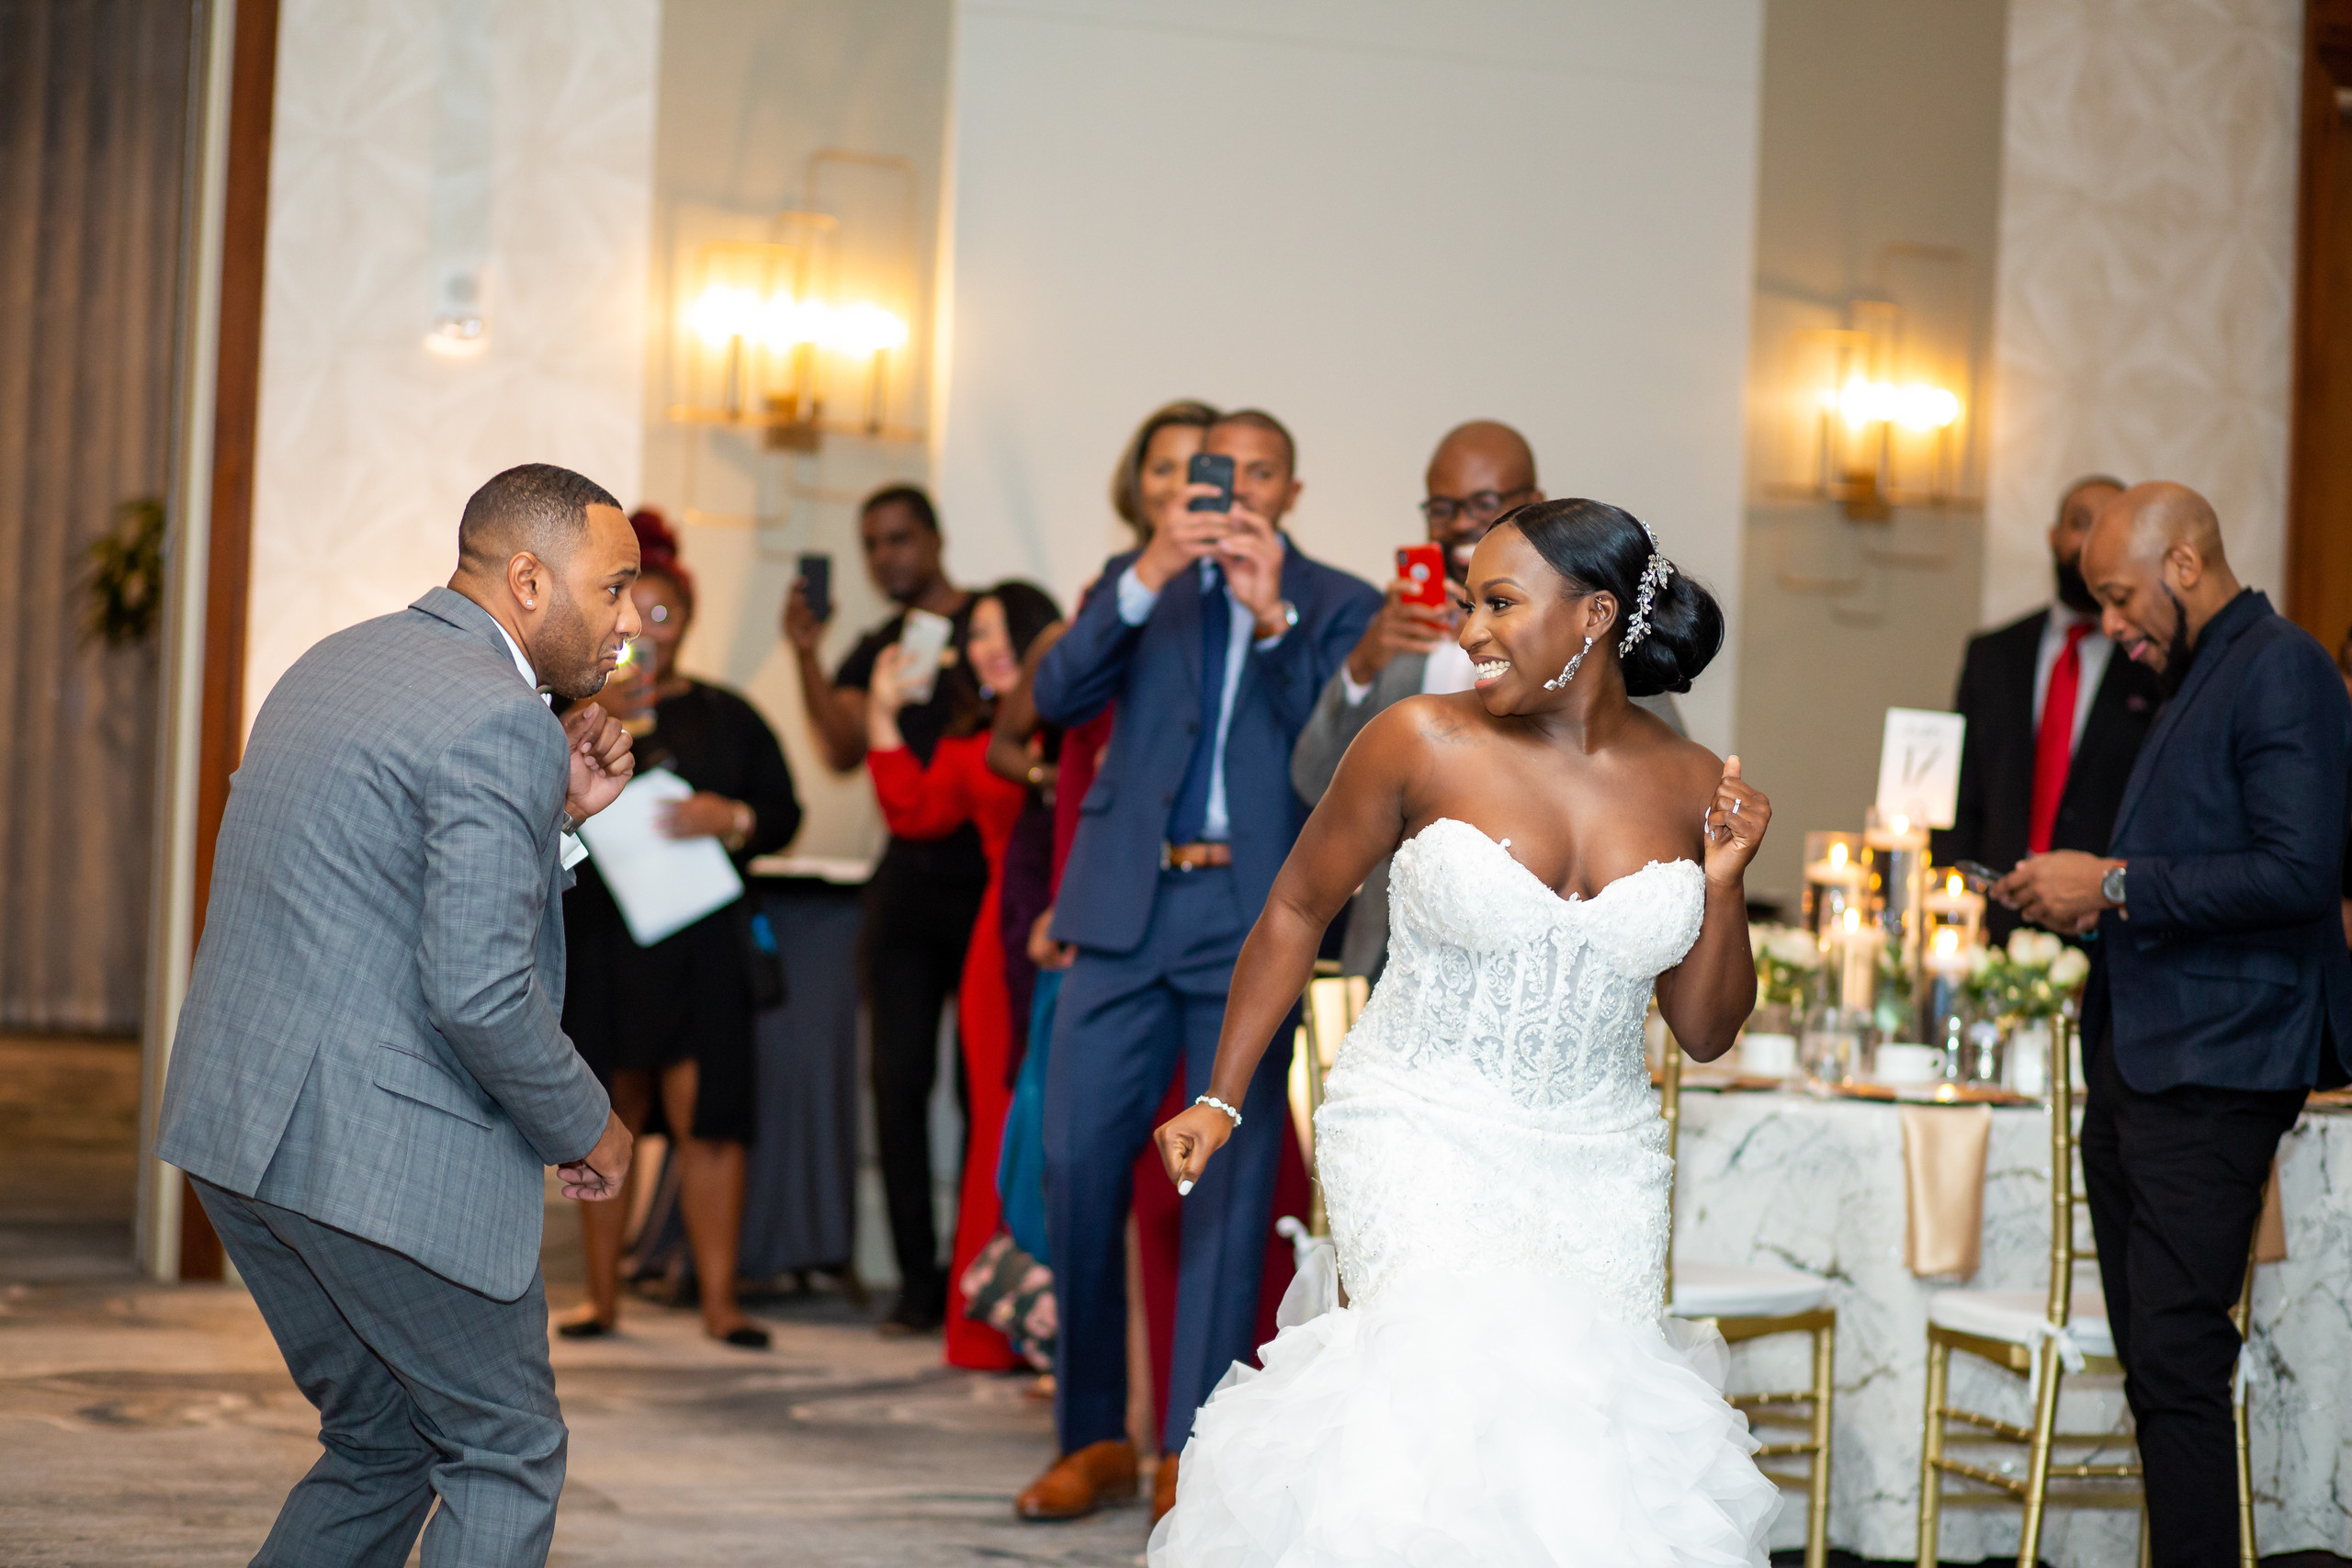 The bride and groom make their grand entrance at the beginning of the wedding reception at the Hilton Main in Norfolk, Virginia.